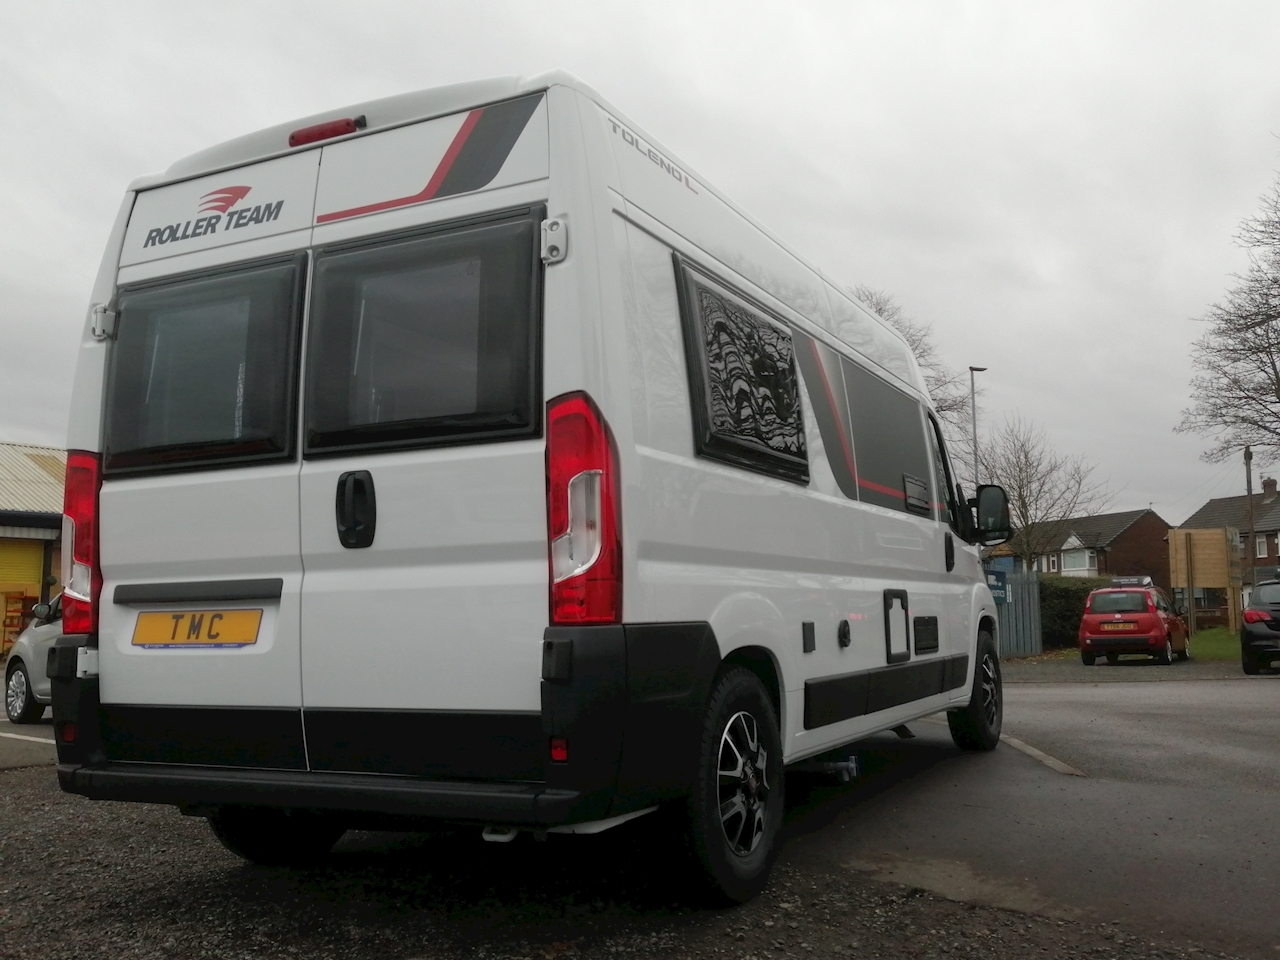 Roller Team Toleno L (120 BHP) (BRAND NEW IN STOCK) 2000 Motorhome Manual Diesel